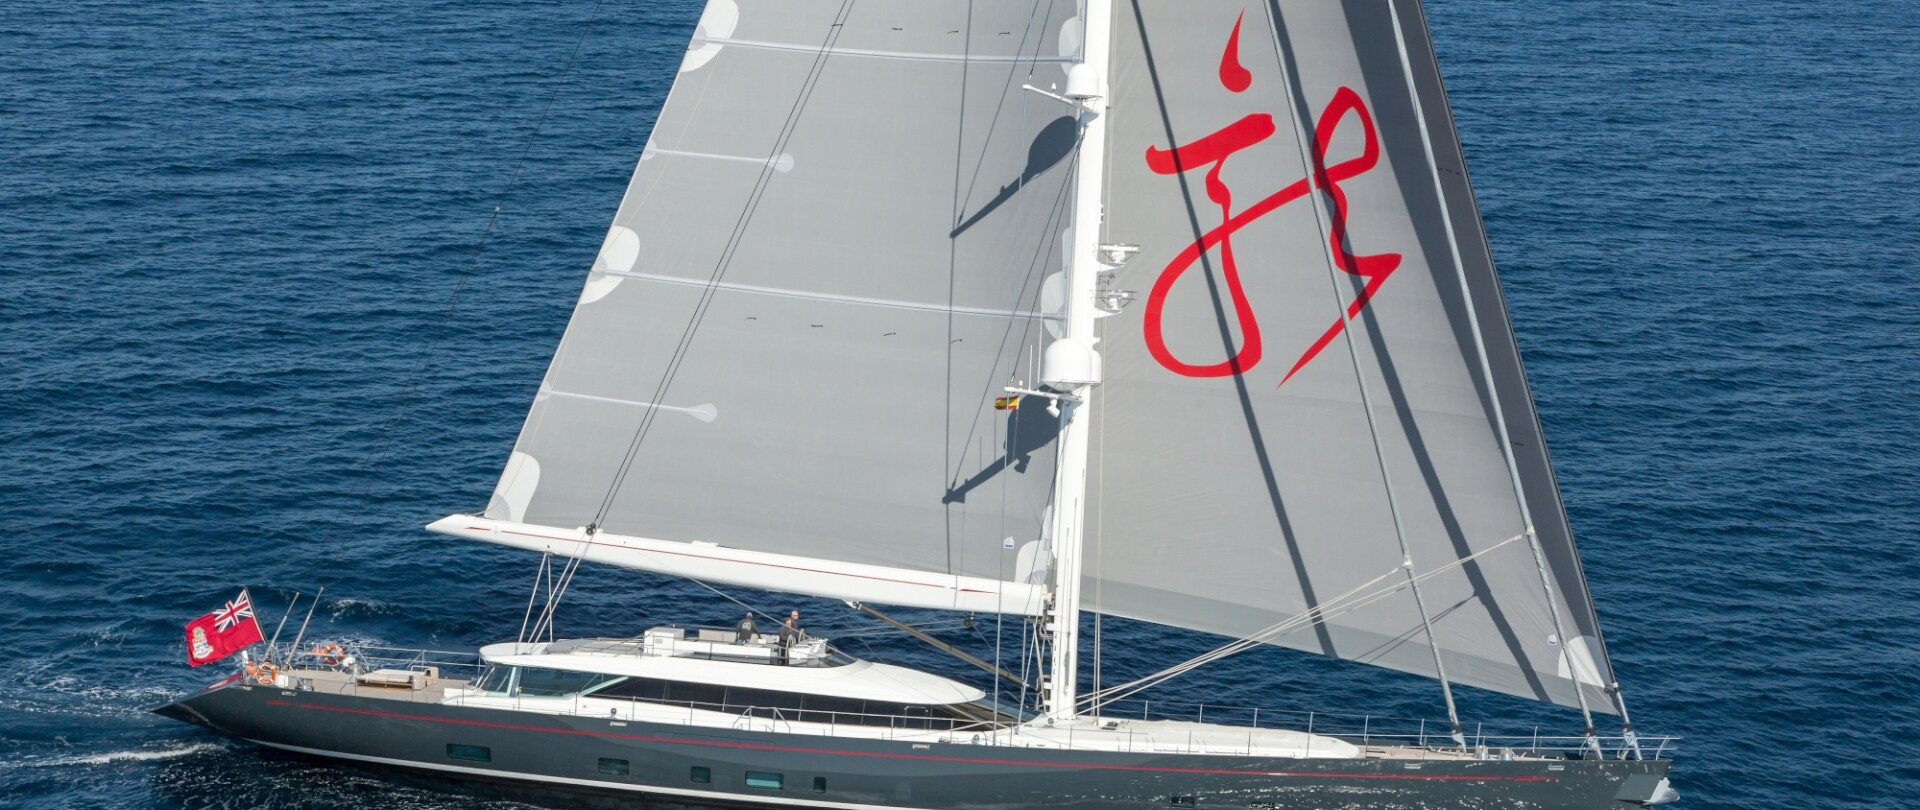 RED DRAGON At anchor during the MYS 2015 photo 1